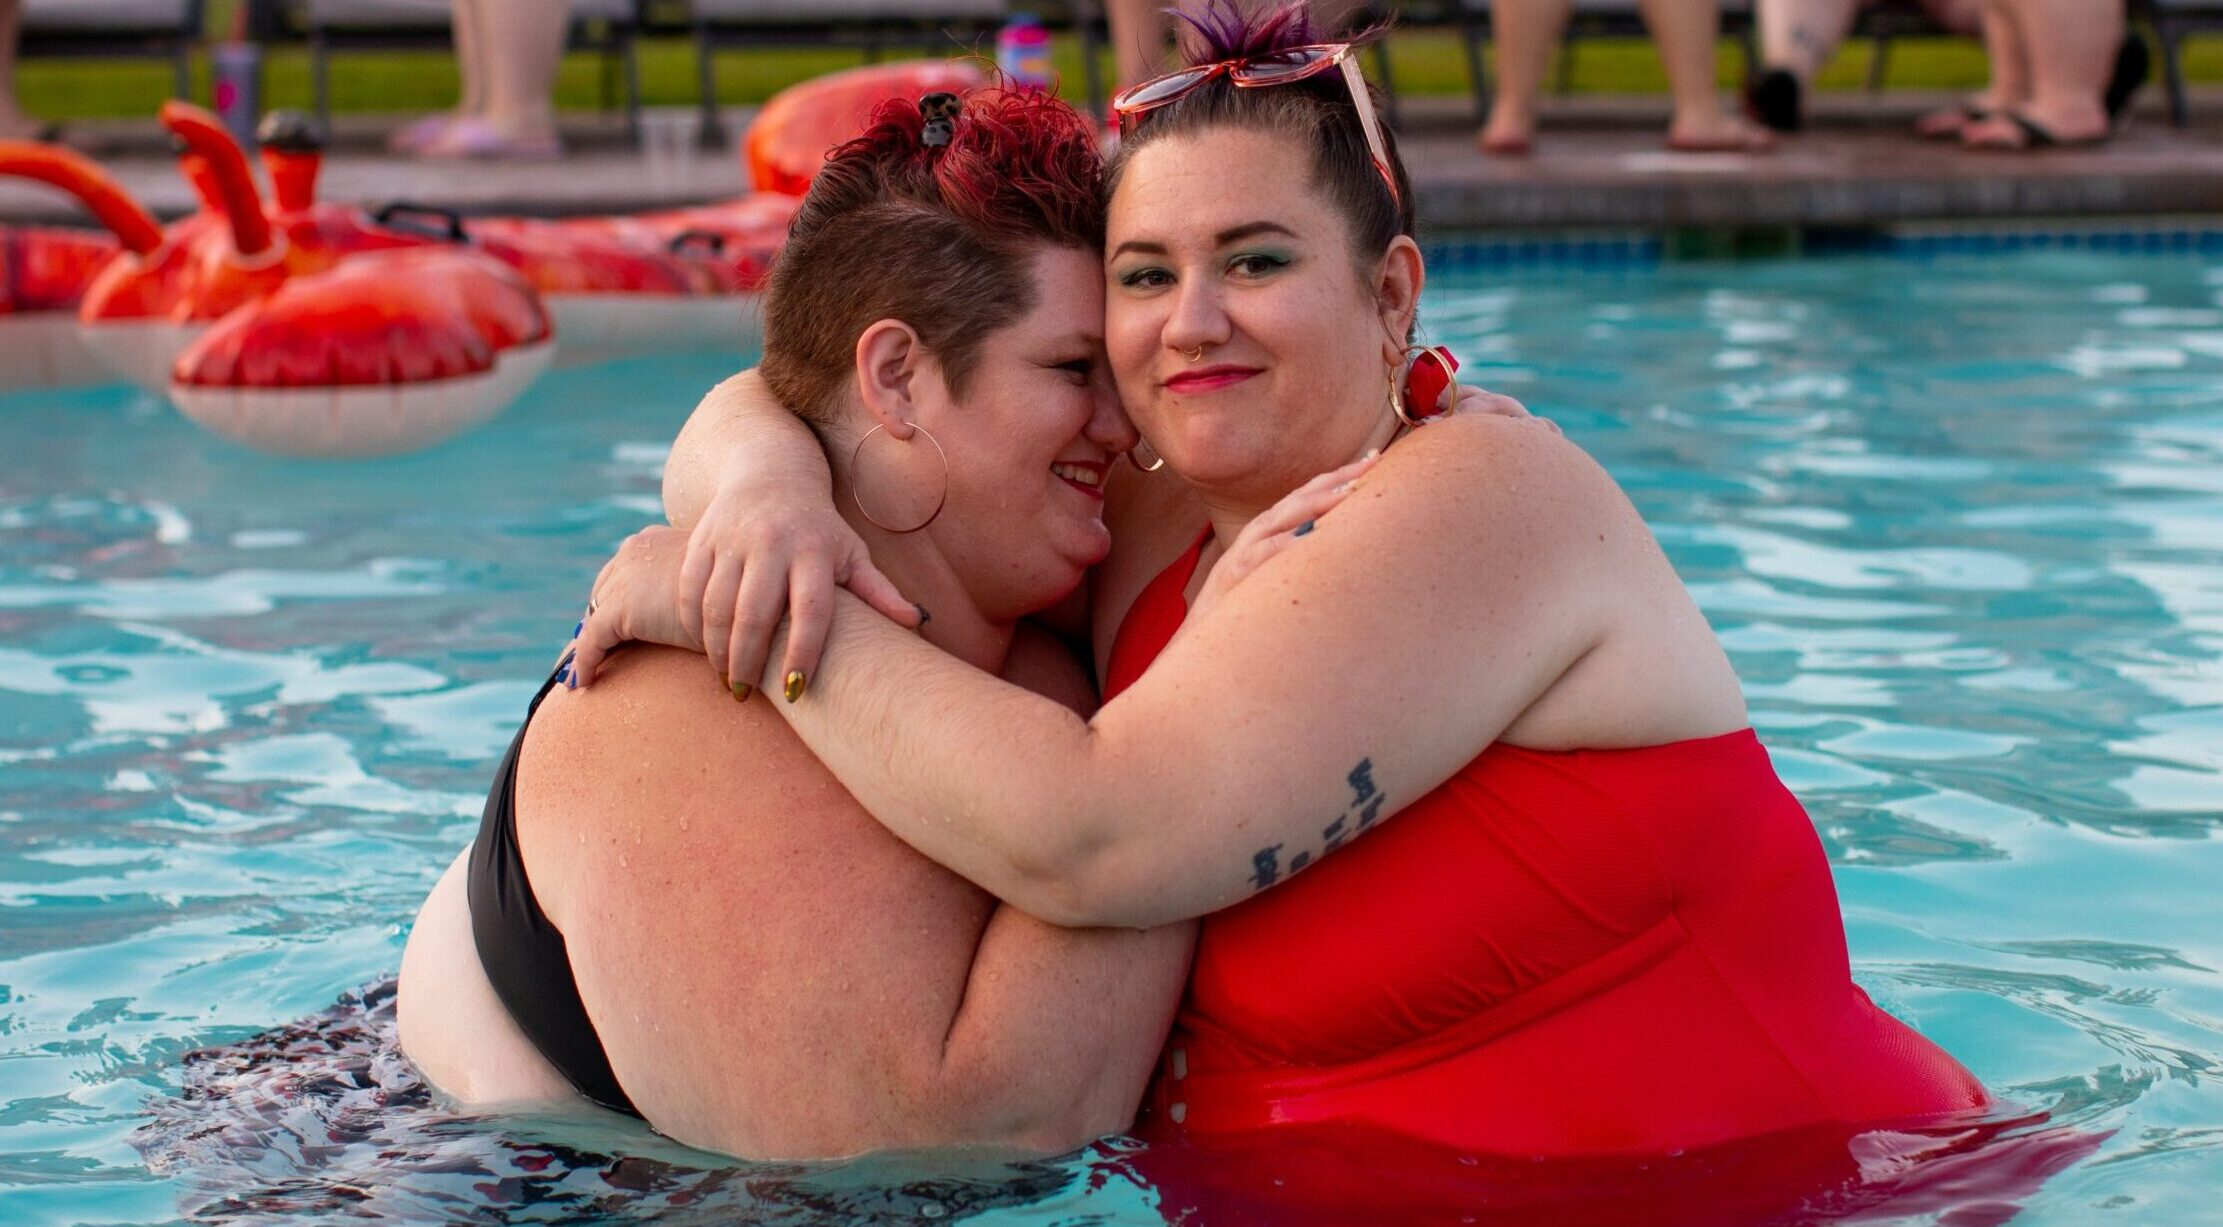 Two people hugging and smiling in a swimming pool, wearing swimsuits | These are the Only 3 Things You Need to Have Better Sex for a Lifetime | Passion by Kait